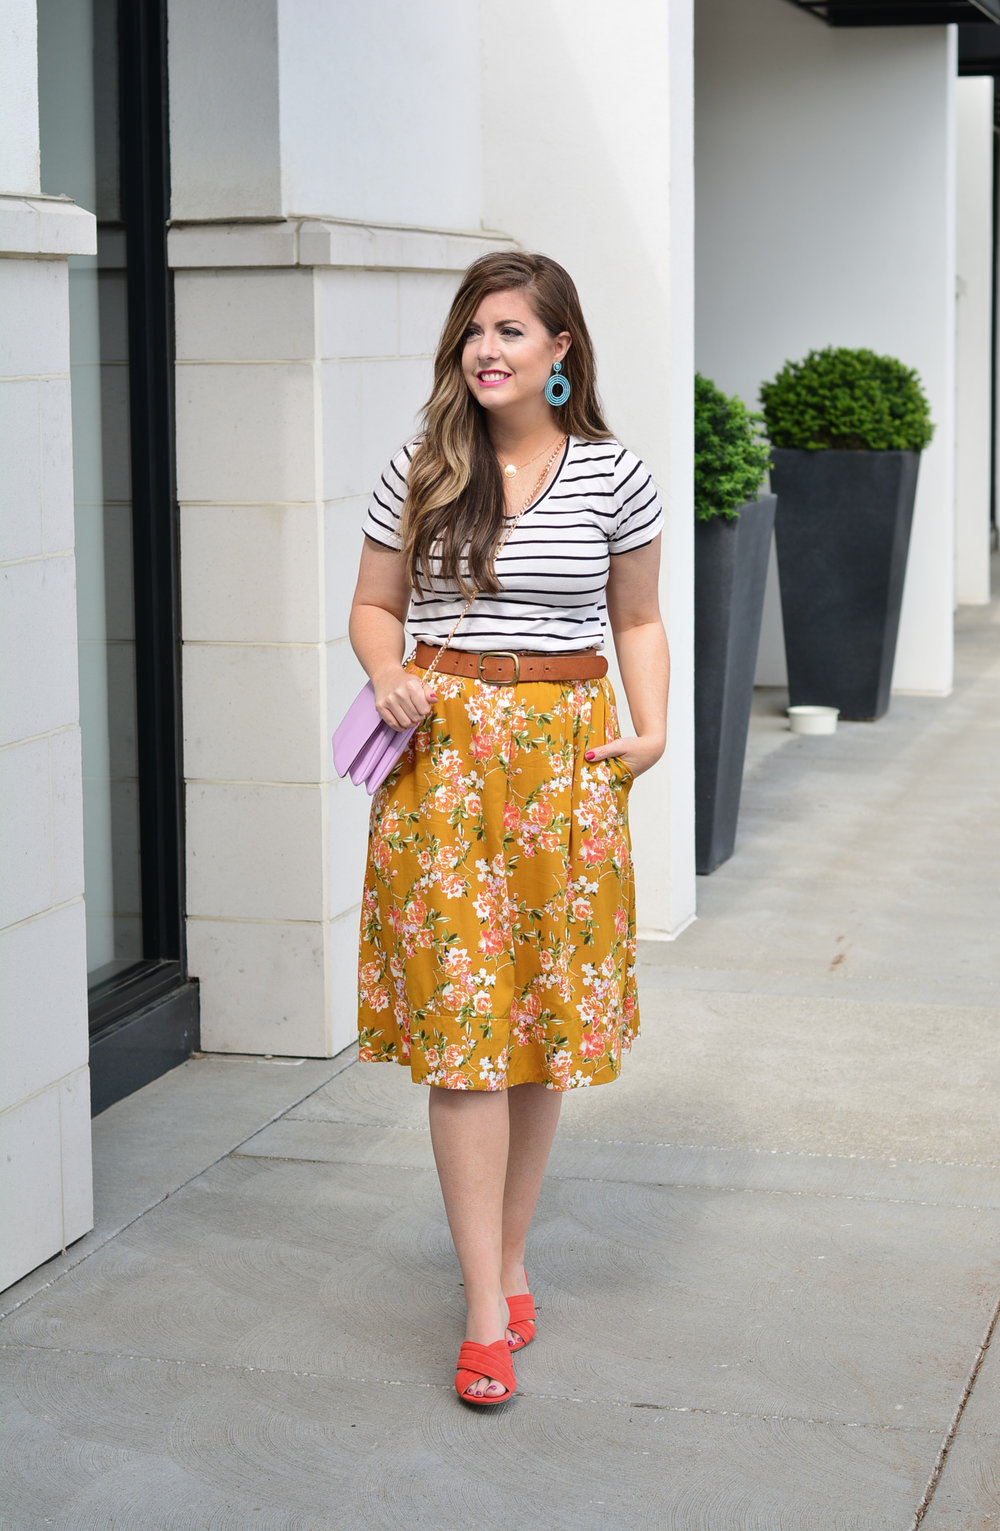 Floral skirt for summer